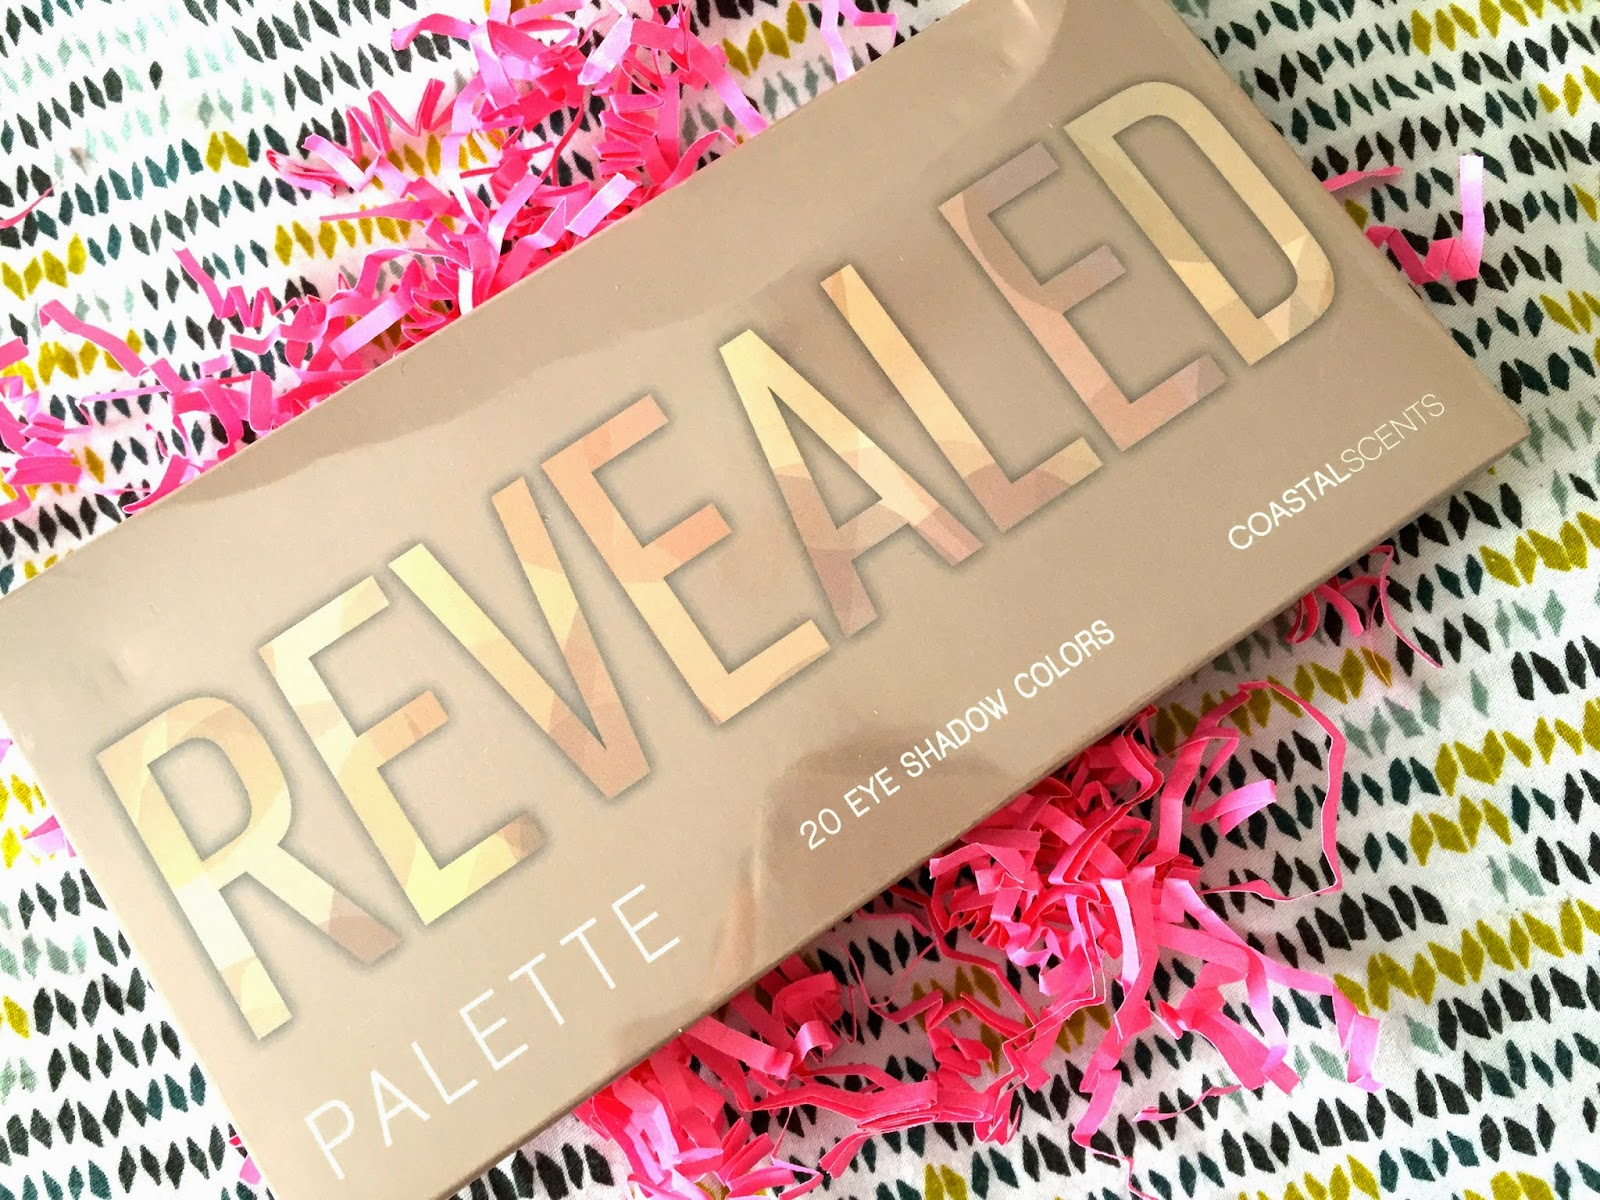 revealed palette, make up